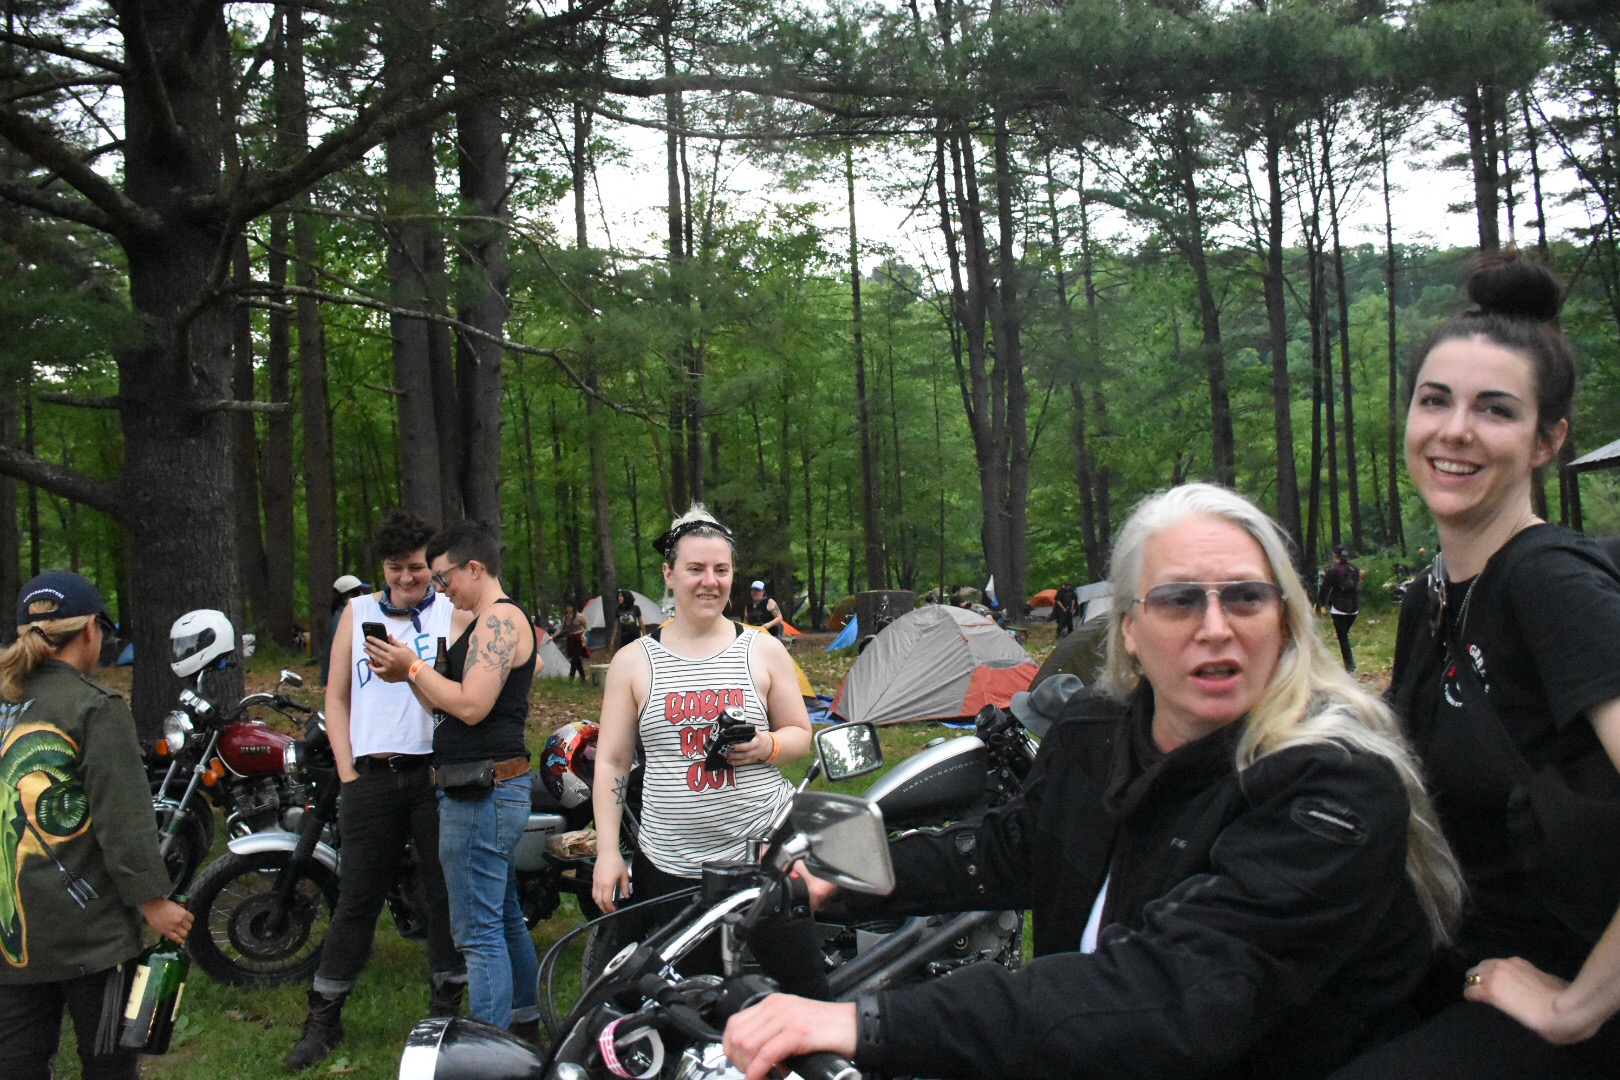 babes ride out 2018 women who ride moto camp new york east coast 11.jpg